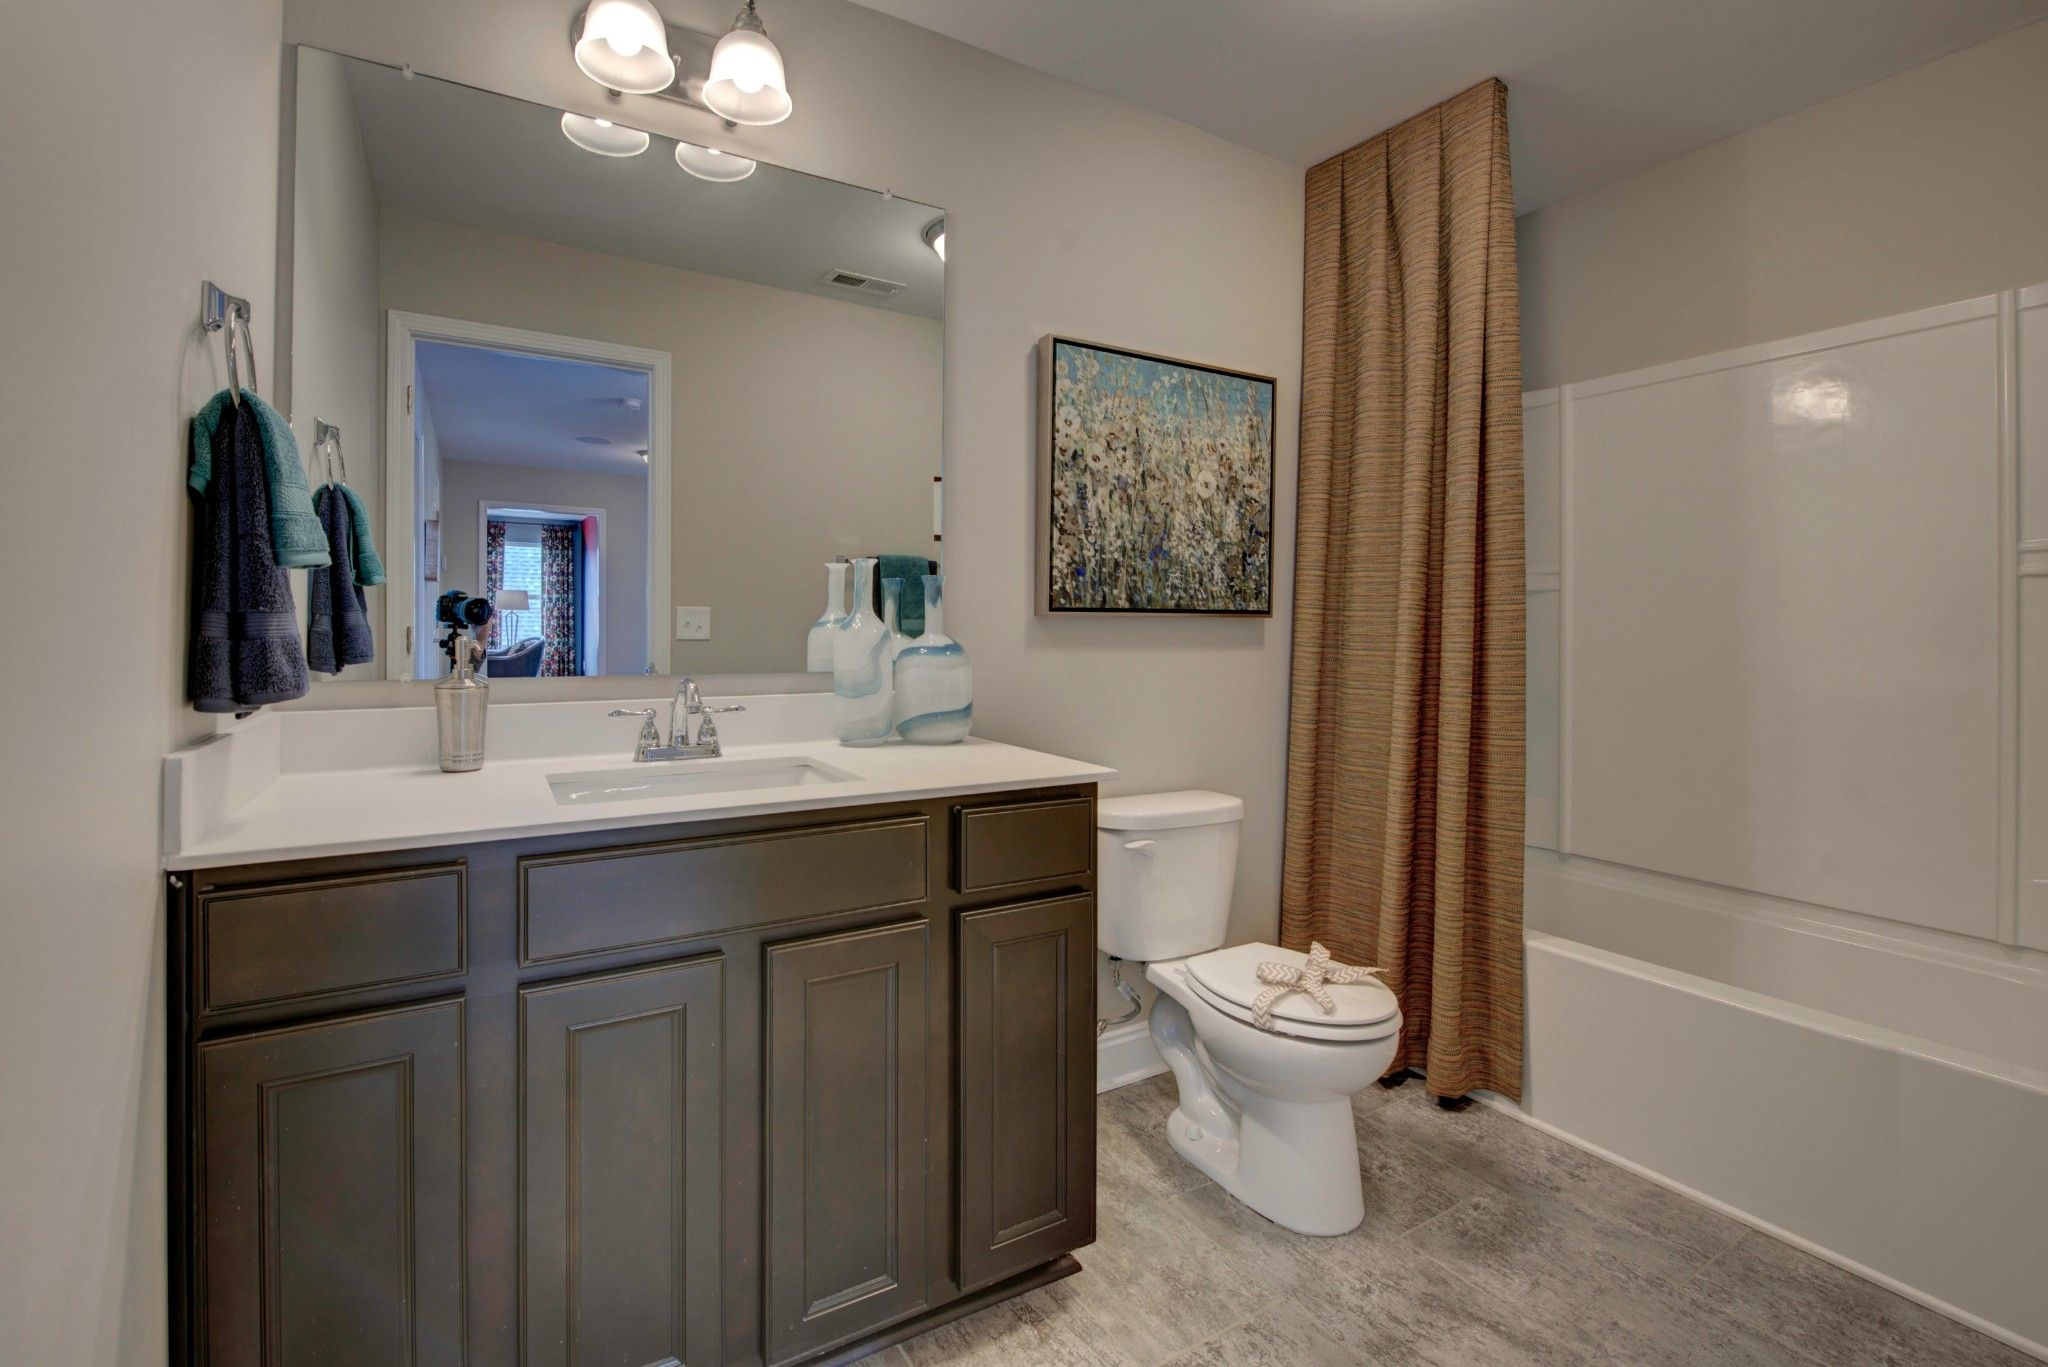 Bathroom featured in The Eliot By Goodall Homes in Owensboro, KY